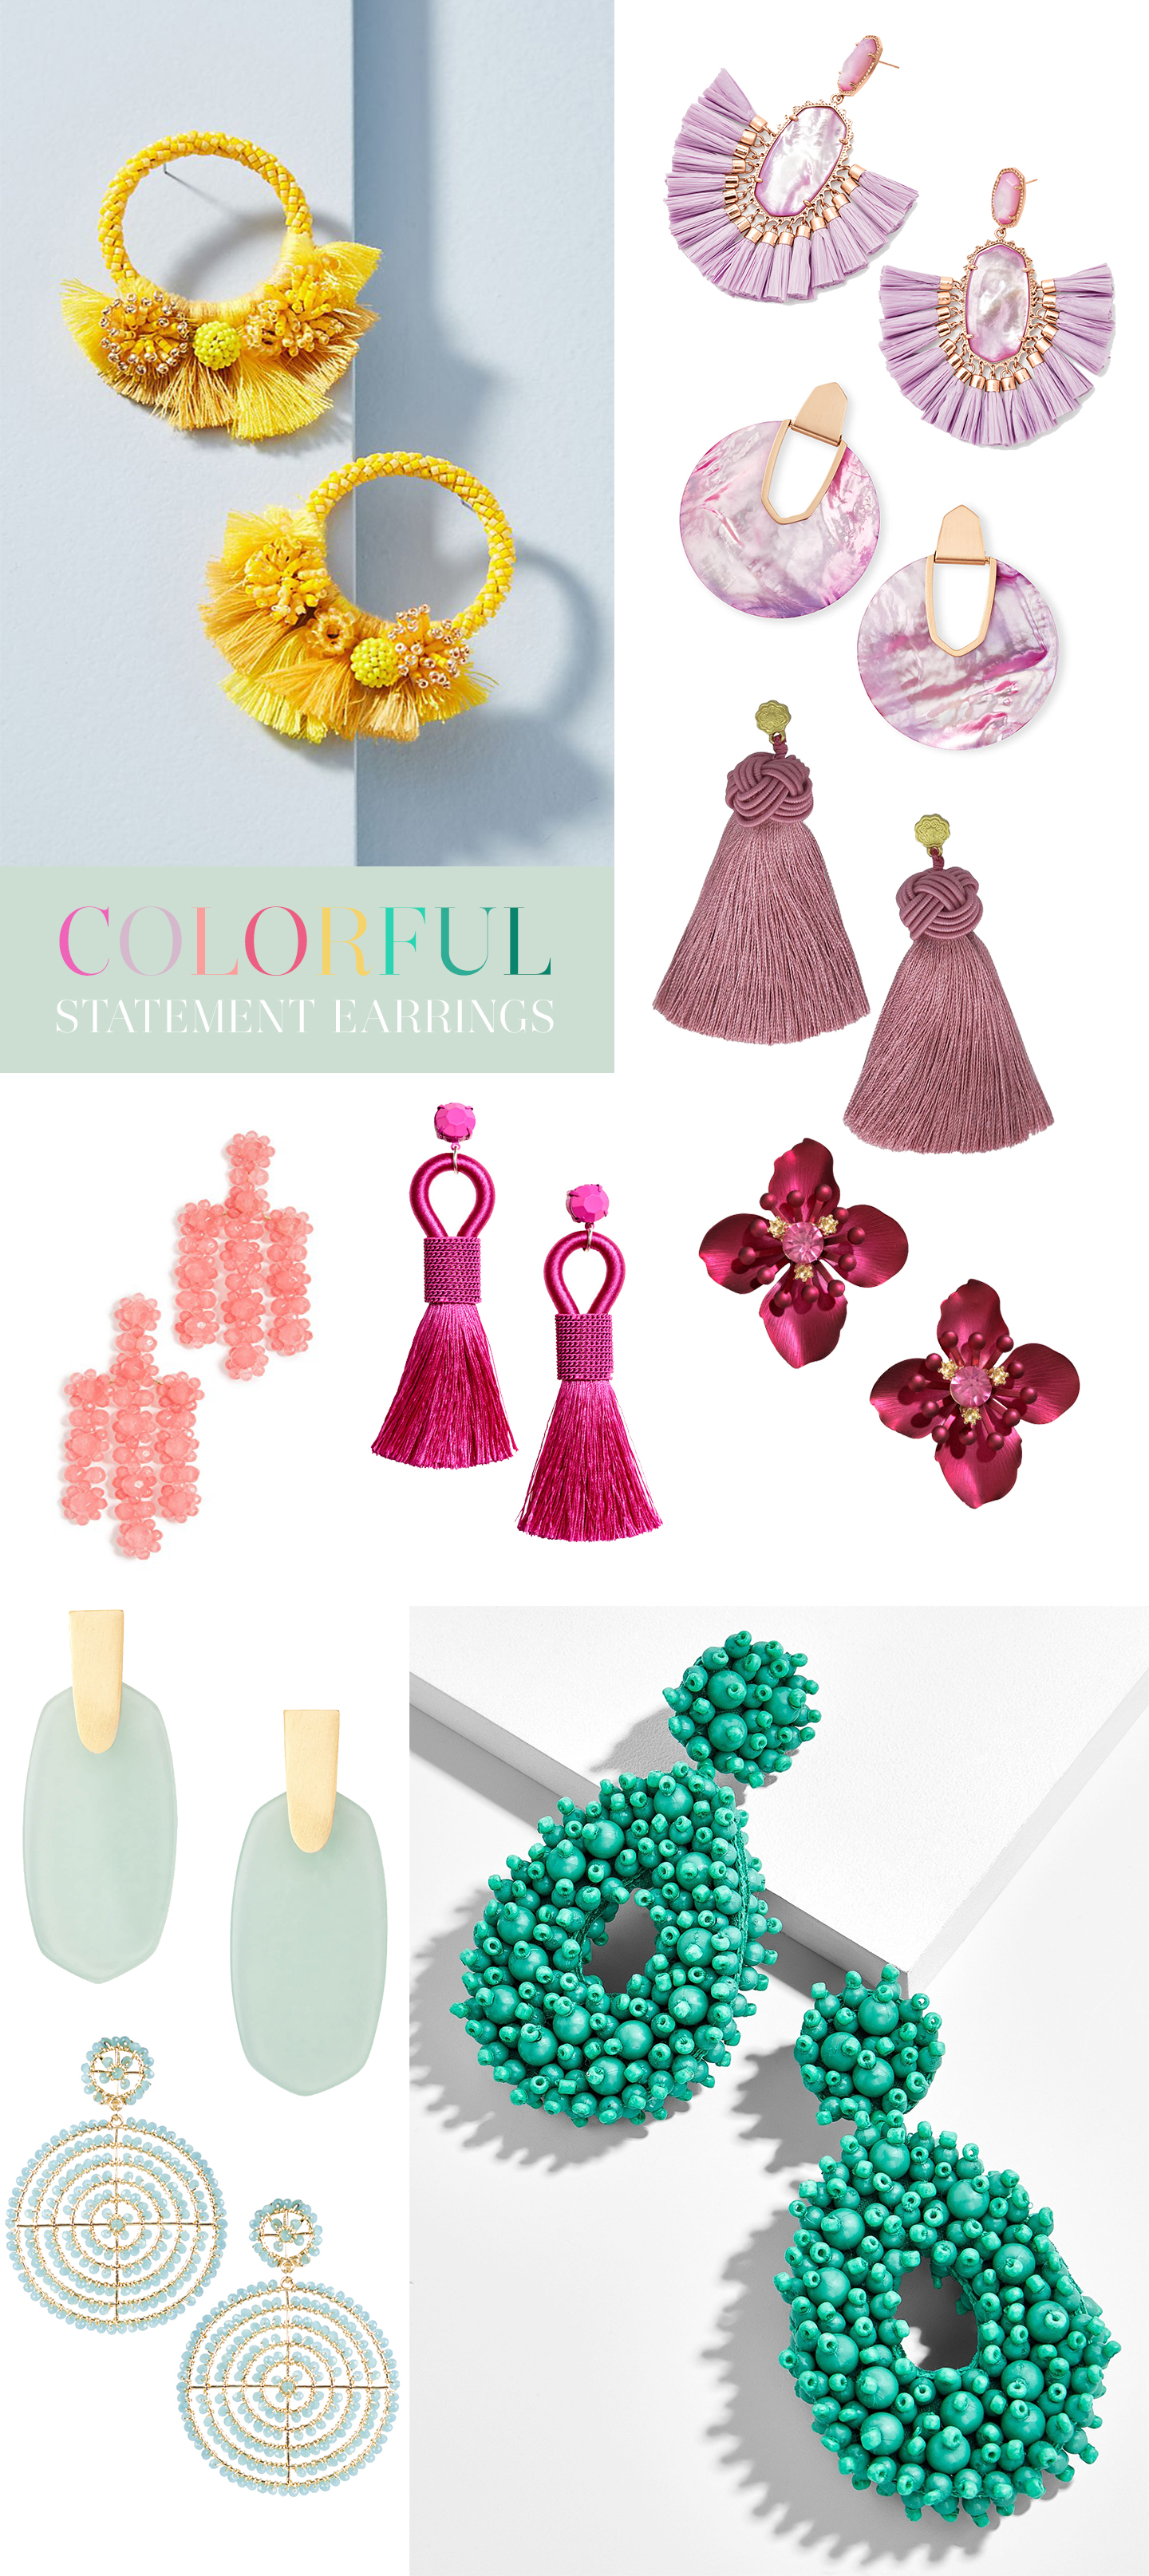 Colorful Statement Earrings